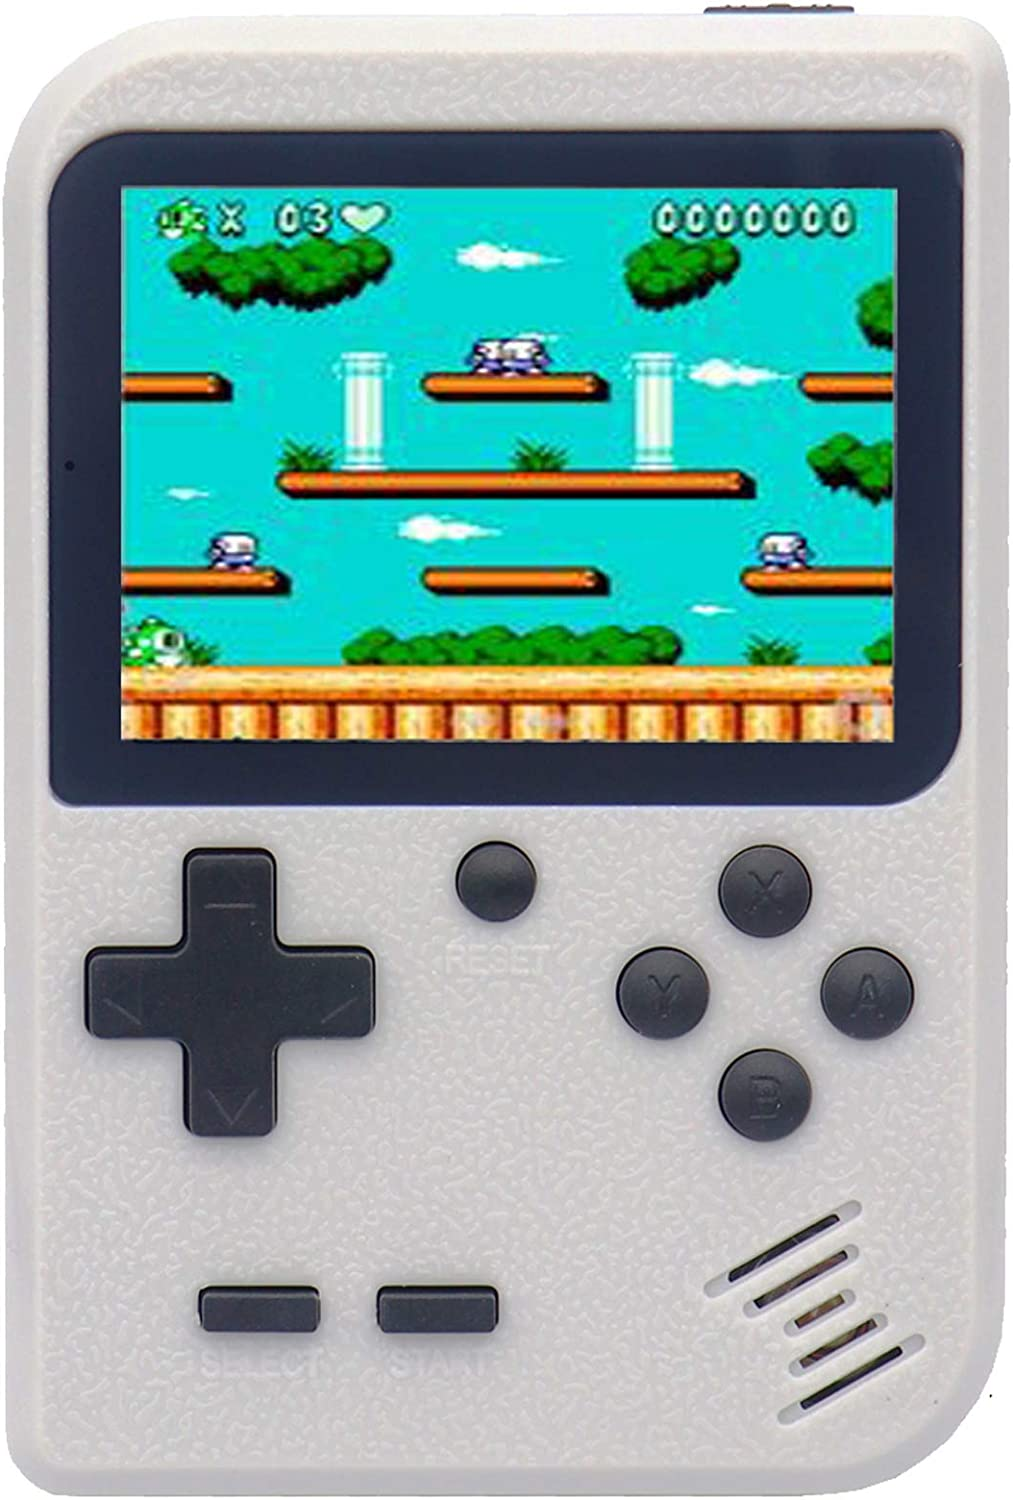 RFiotasy Retro Game Machine Handheld Game Console with 400 Classical FC Game ConsoleSupport for Connecting TV Gift Birthday for Kids and Adult (YJ-White)